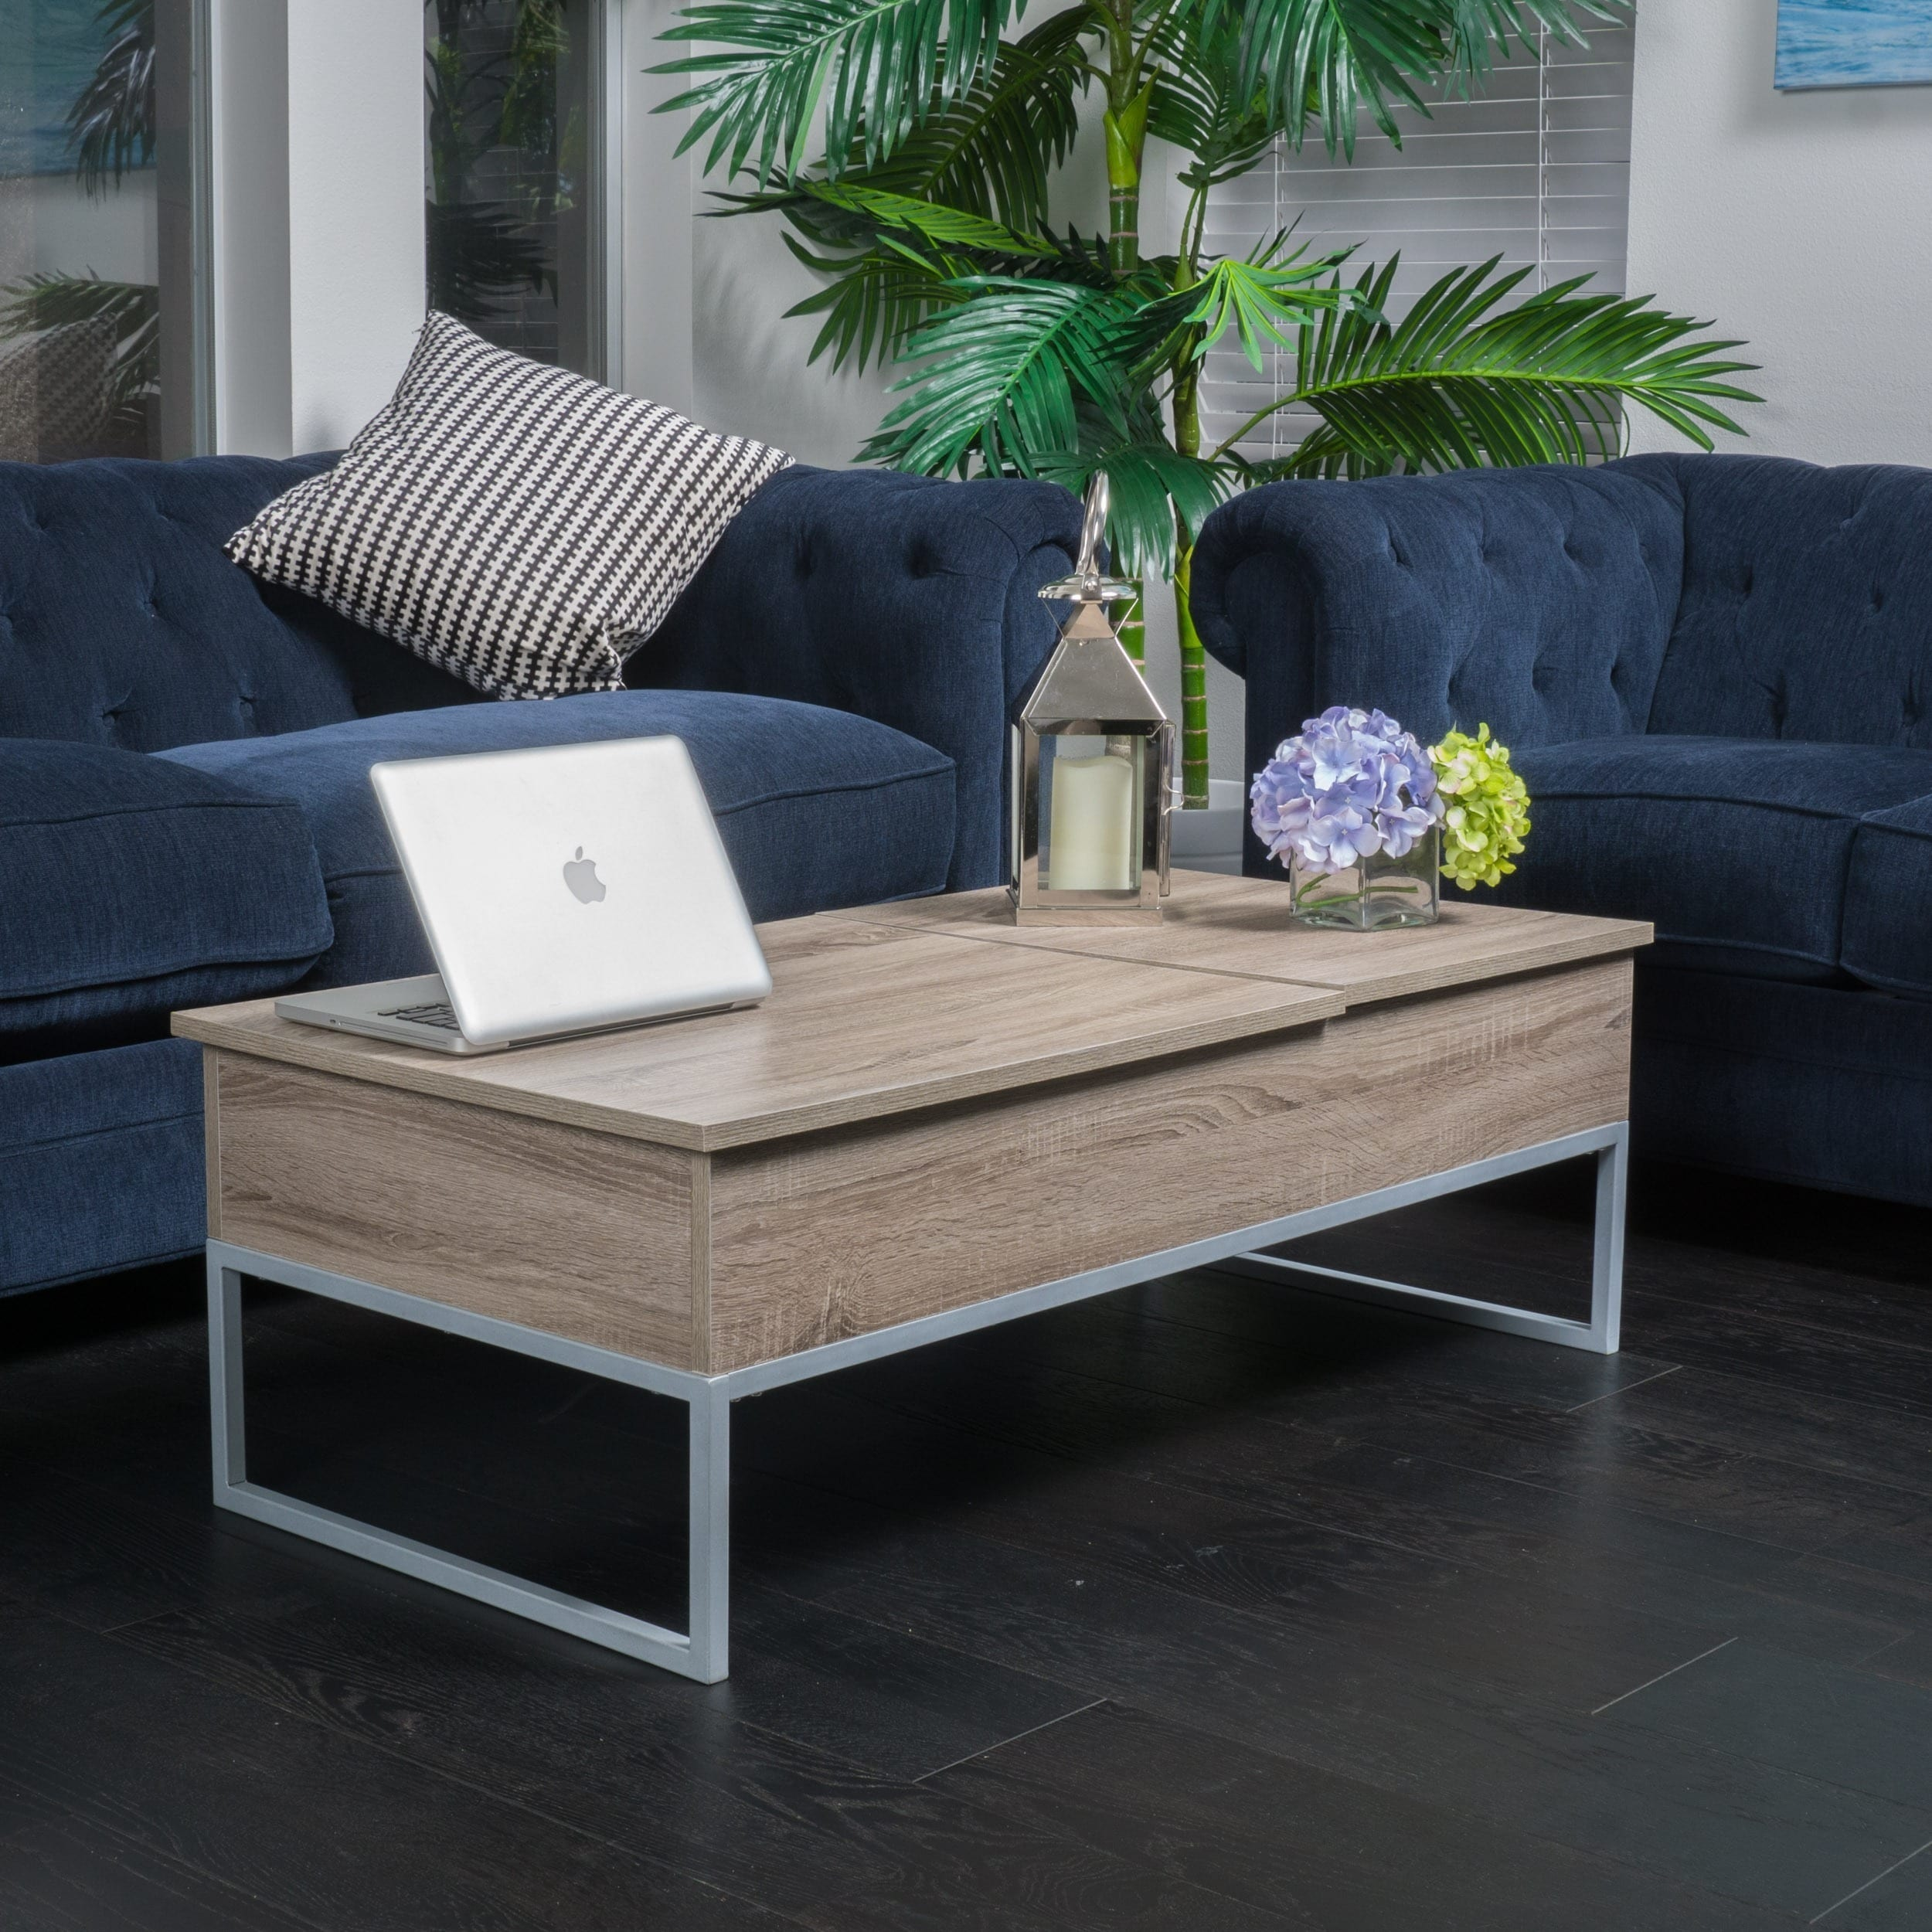 Shop Christopher Knight Home Lift Top Wood Storage Coffee Table   On Sale    Free Shipping Today   Overstock.com   10280310